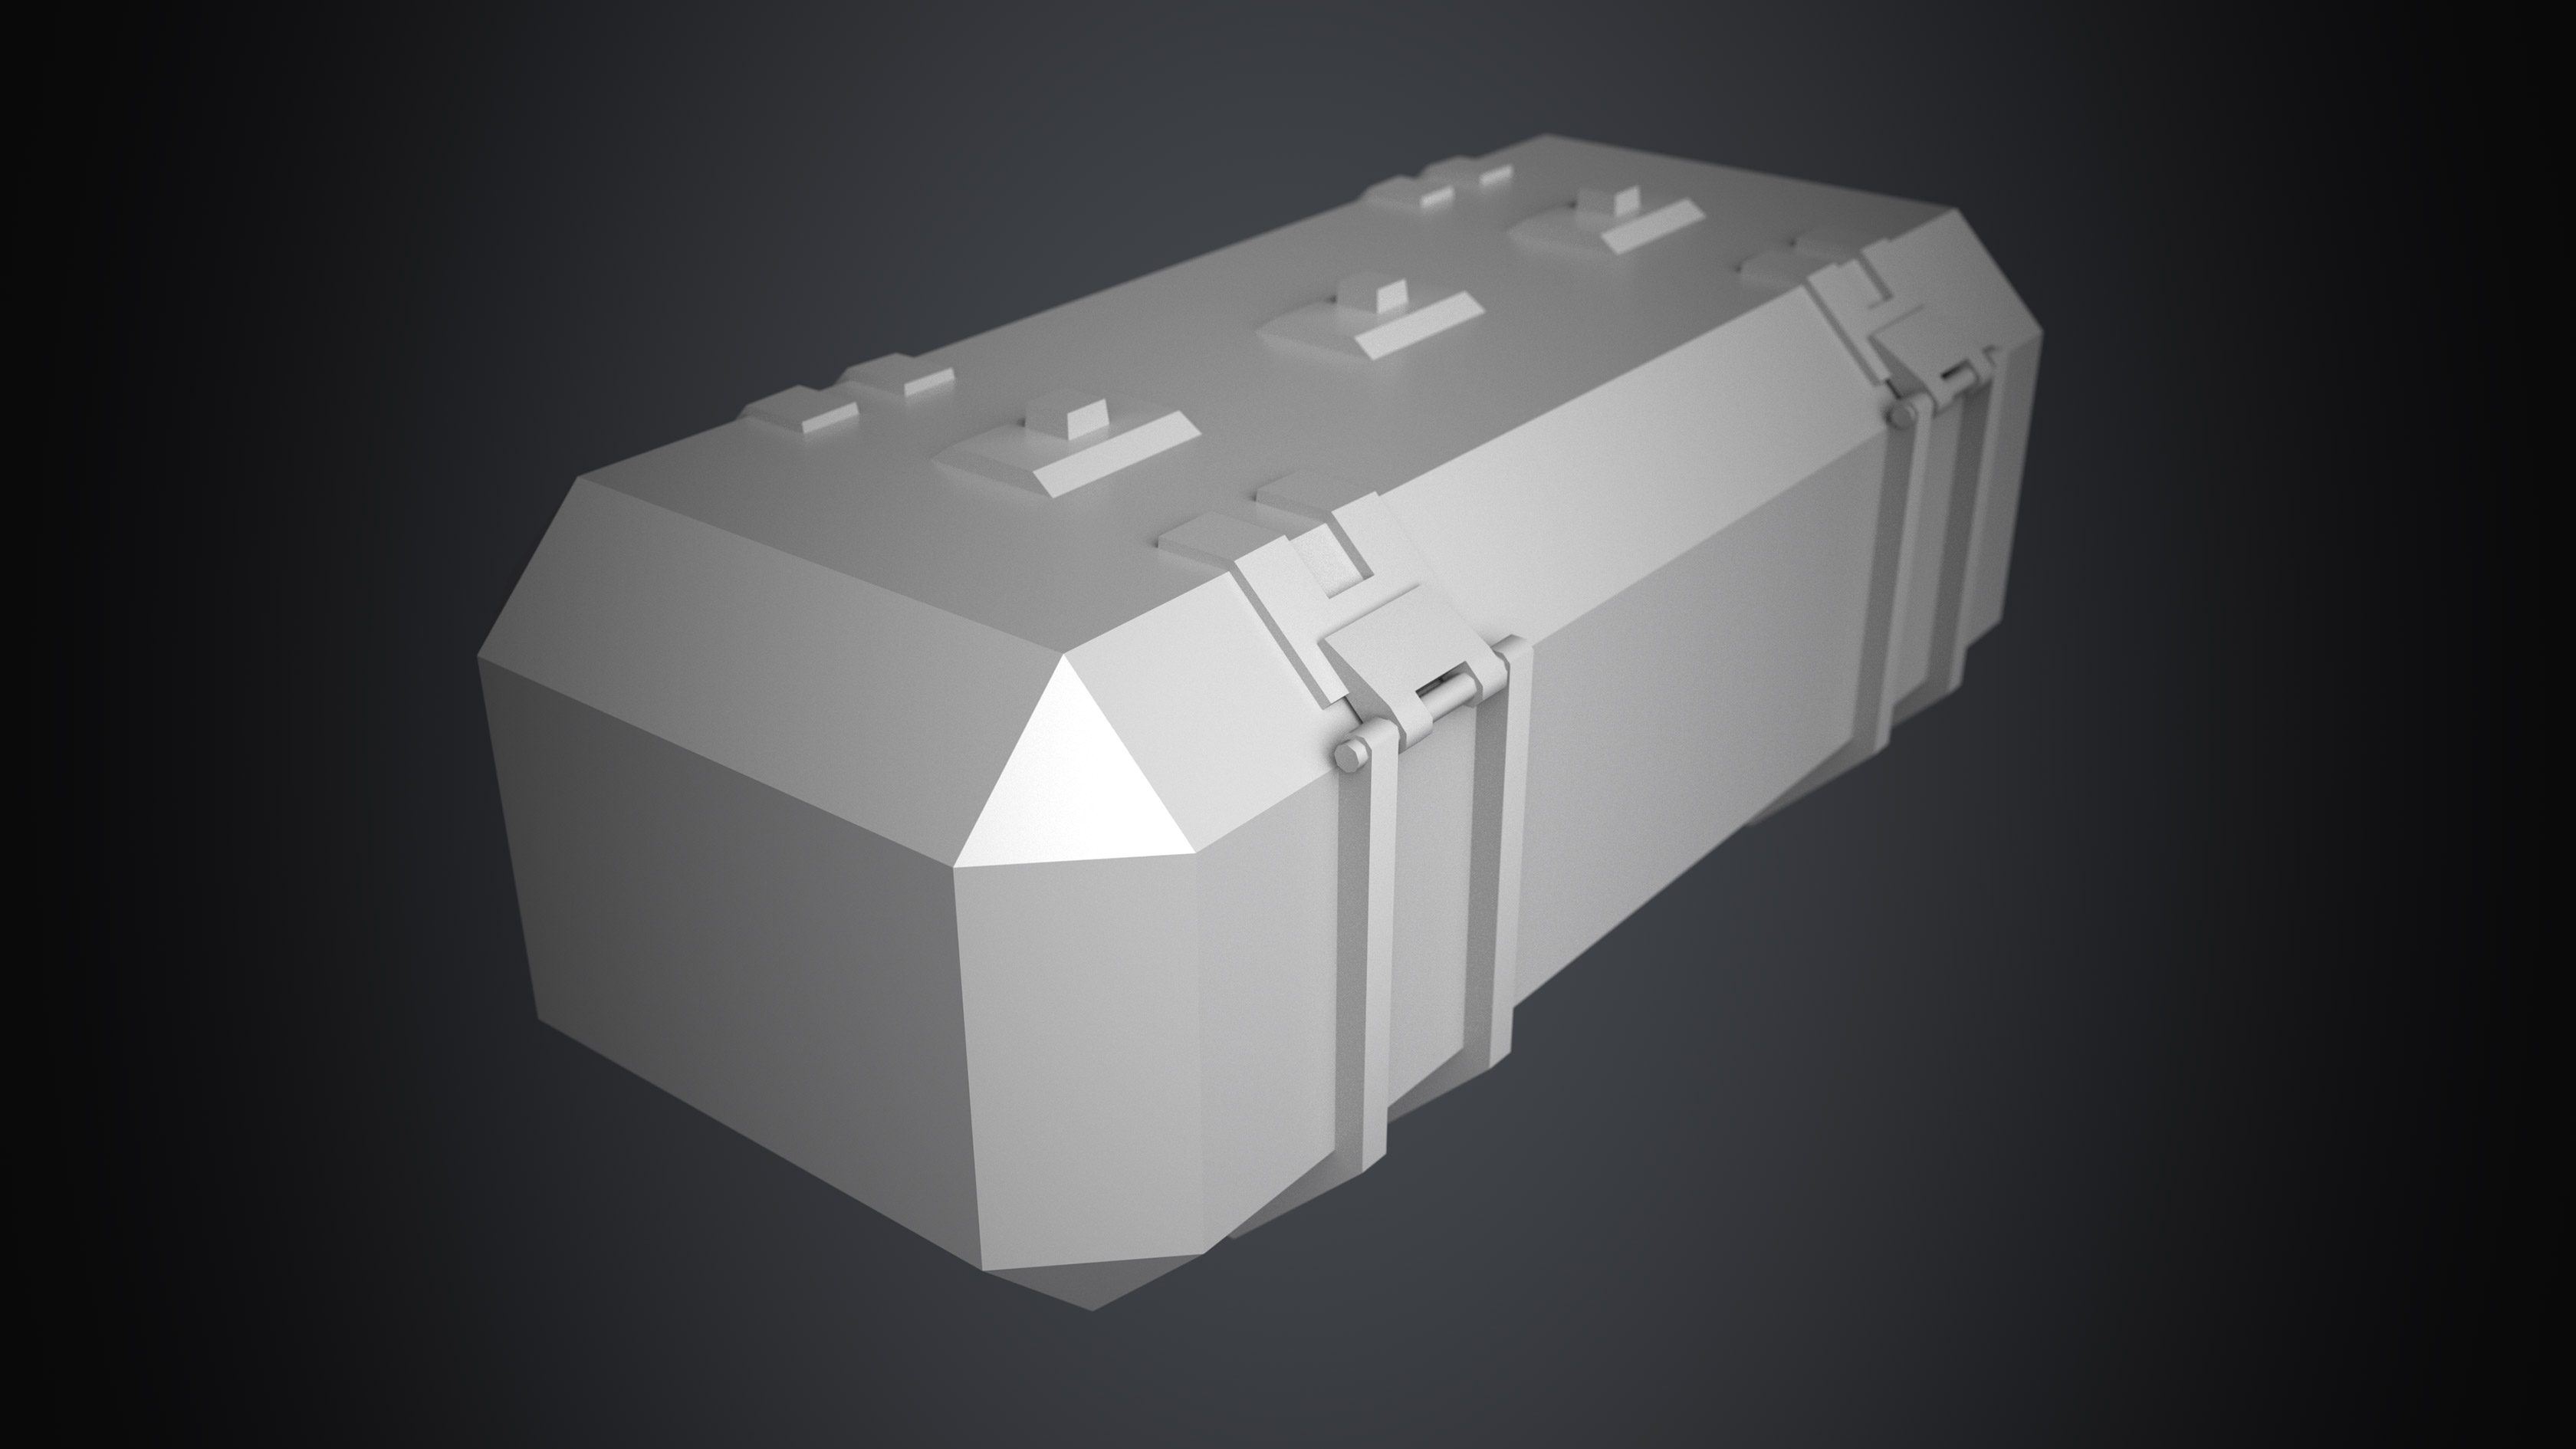 3D Sci fi crate or container with biometrics technology. This is a 3D game model with 1098 triangles without texture. This is a top corner view of the 3D sci fi crate. It is created by Thom Hujanen who is a university educated game designer and 3D artist.